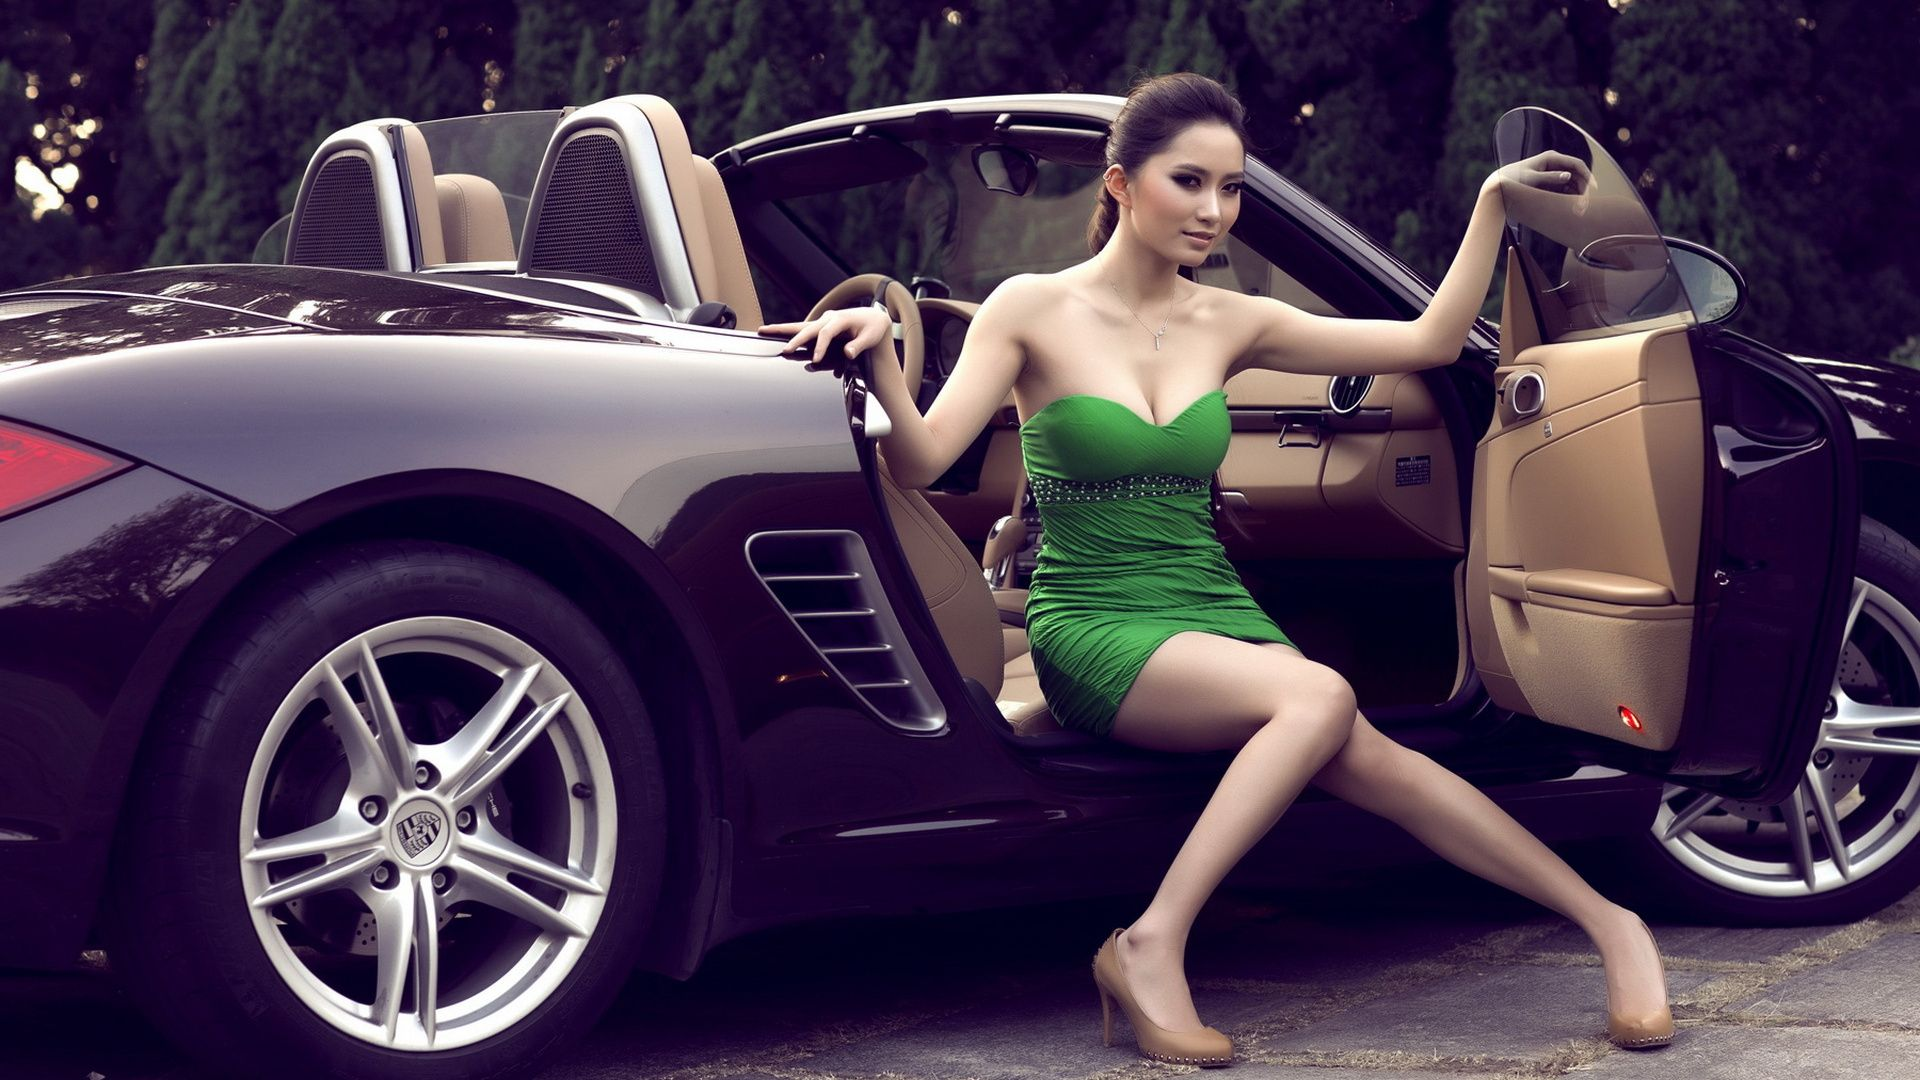 Car Girl picture free download